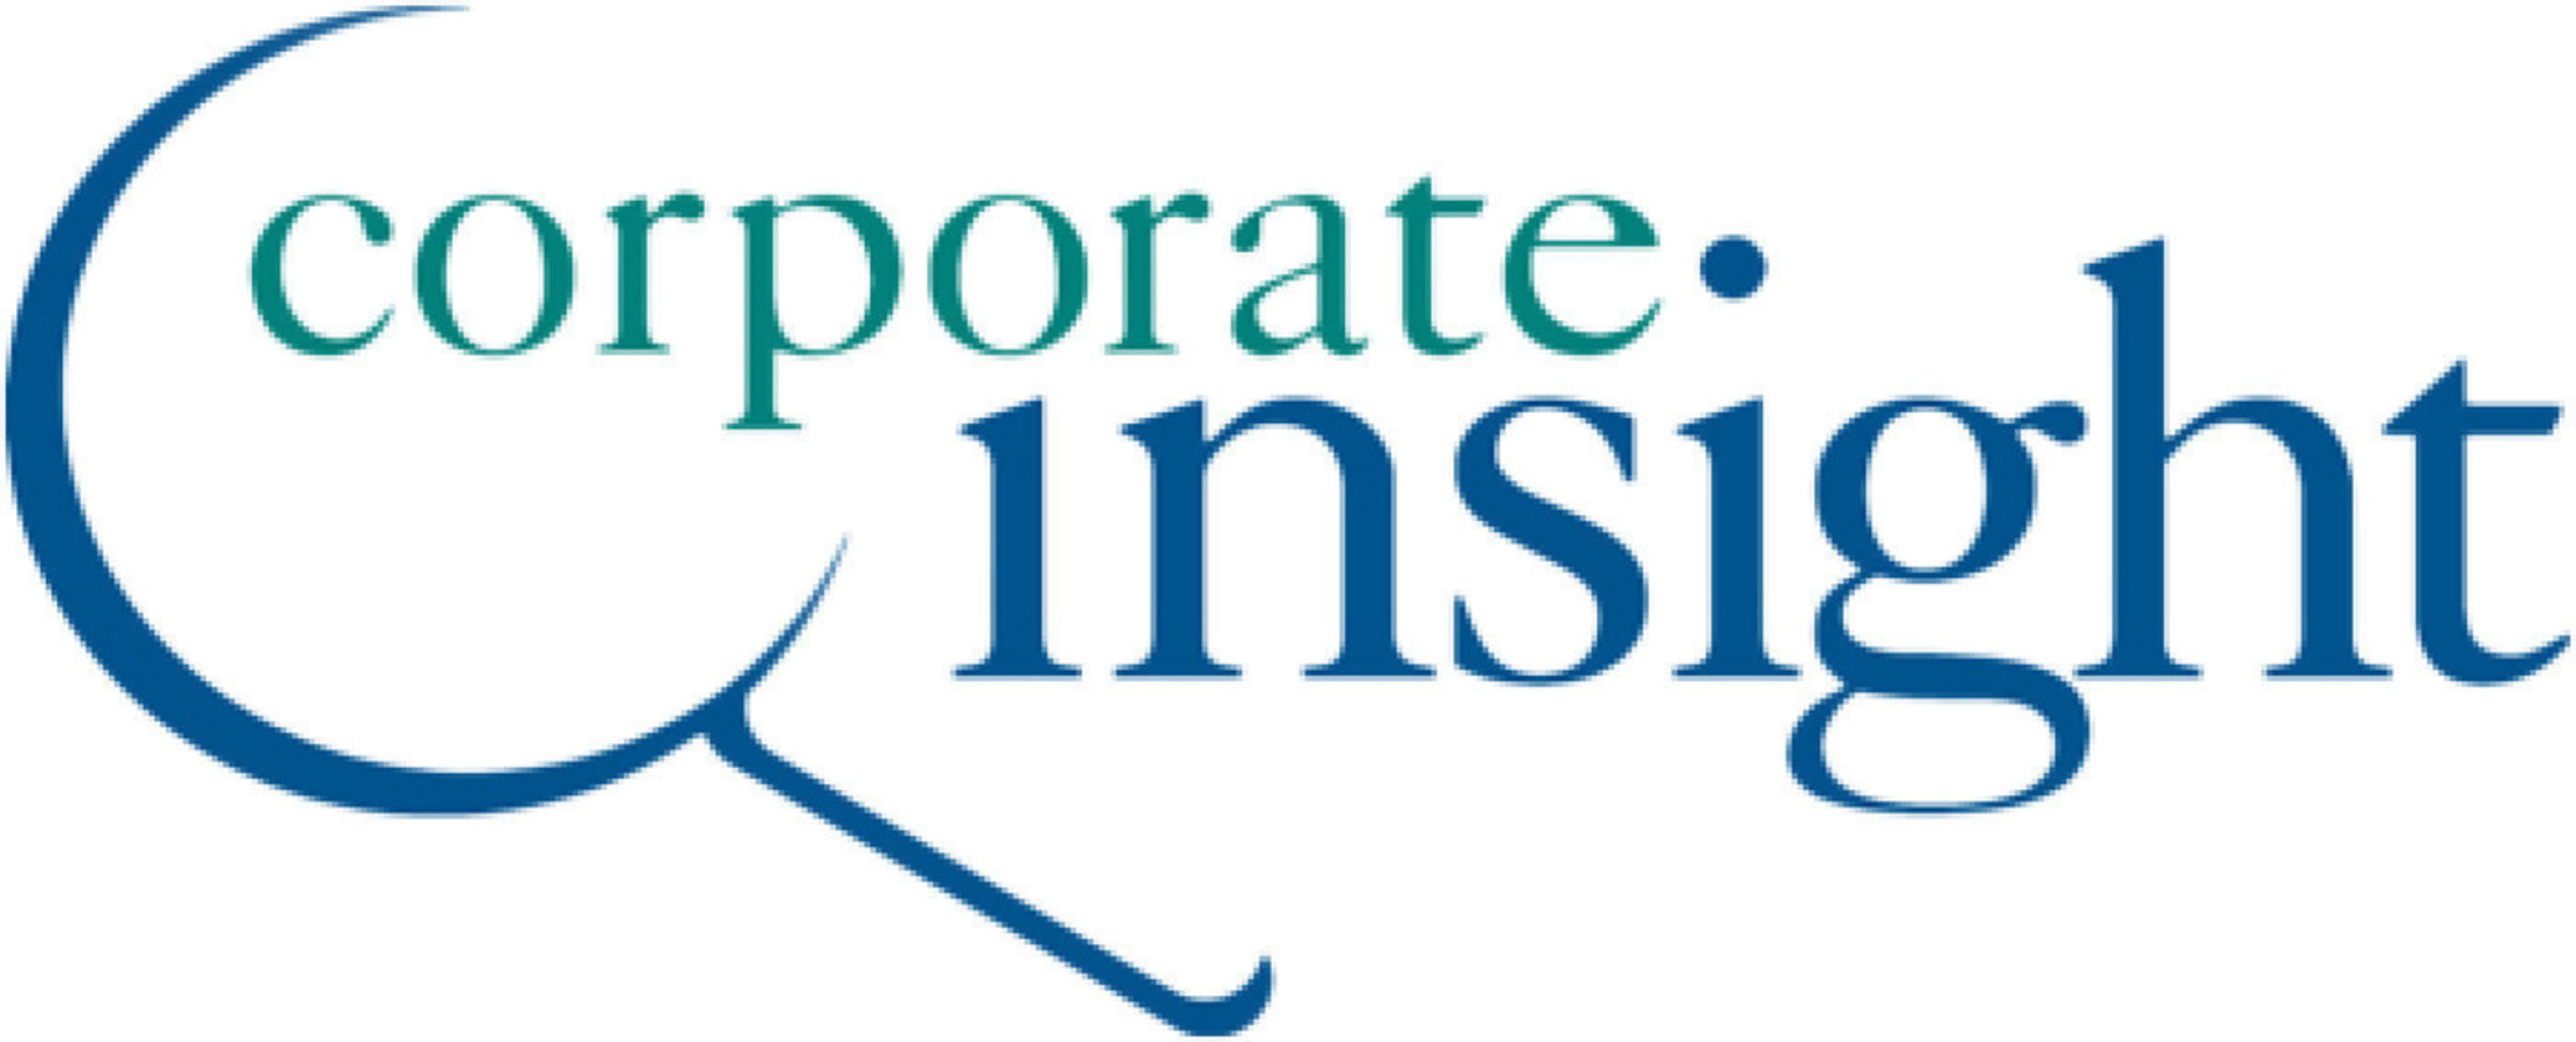 Corporate Insight provides competitive intelligence, consulting and user experience (UX) research to the nation's leading insurers, financial services firms and educational institutions. For more than two decades, the firm has published customer experience-focused research and has advised clients on key competitive issues with a focus on helping them improve their digital capabilities. The firm offers subscription-based Monitor Services in 14 verticals, including brokerage, healthcare and alumni relations, along with custom research and consulting services, digital capabilities audits, special studies and UX research. To learn more, visit http://corporateinsight.com/about-us/what-we-do/corporateinsight.com. Connect with us on Facebook, Twitter and LinkedIn. (PRNewsFoto/Corporate Insight)